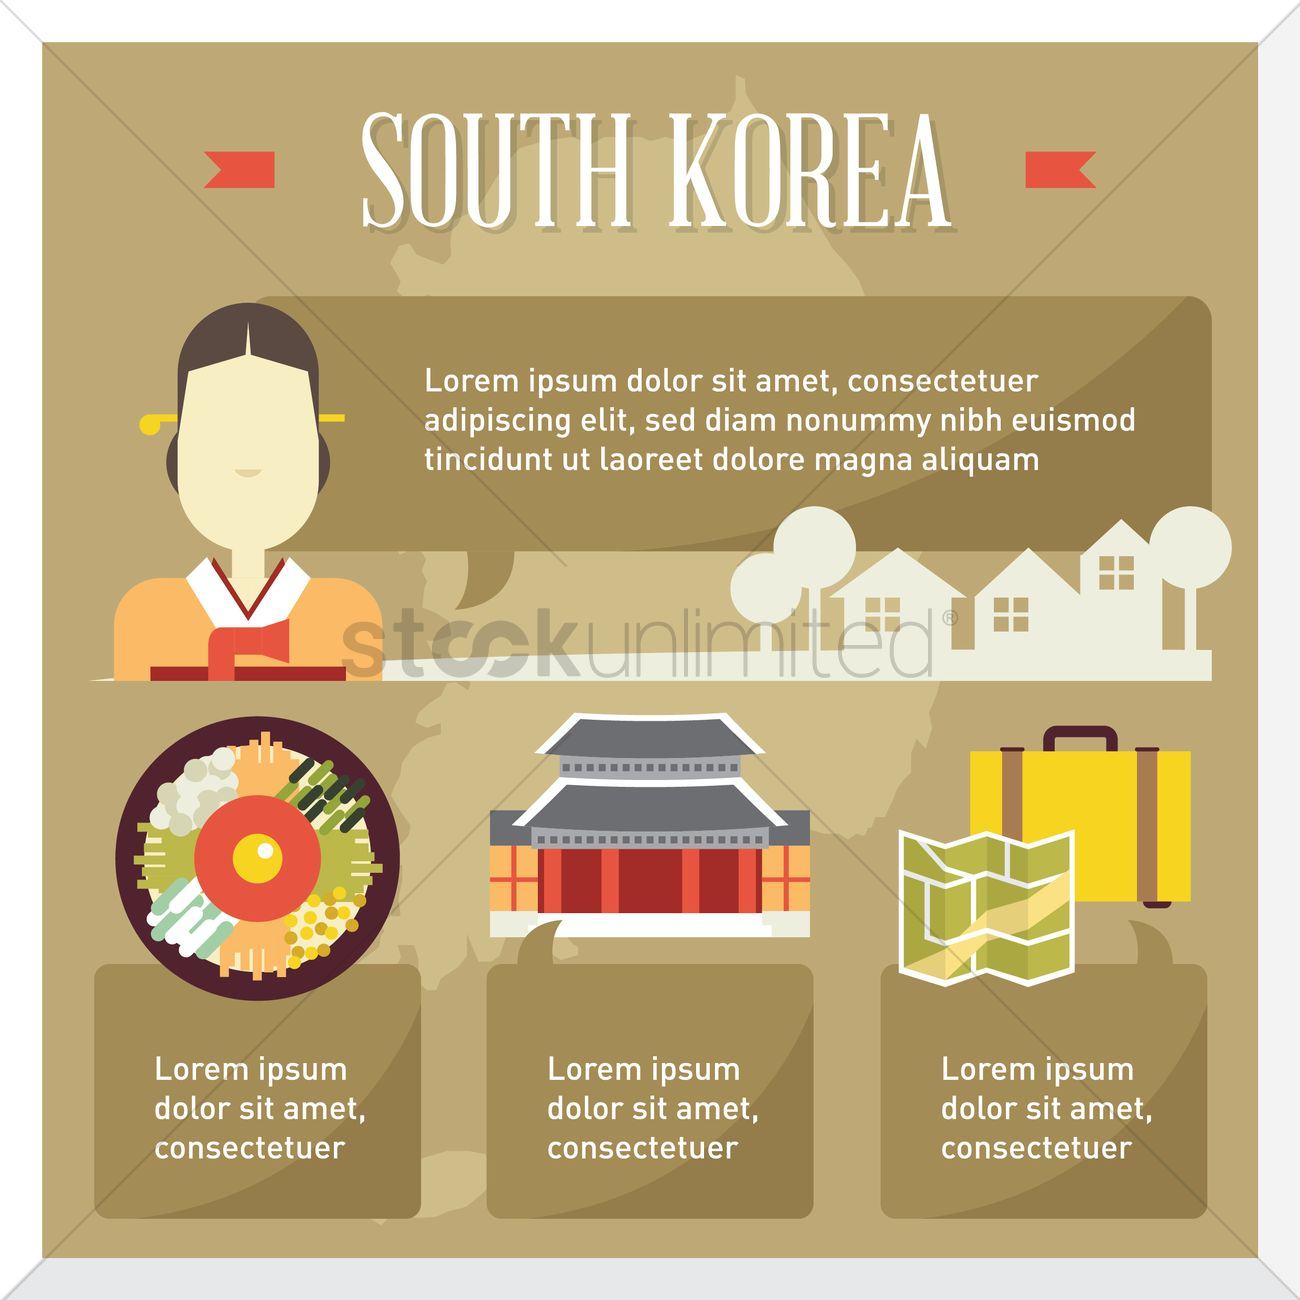 About South Korea South Korea Travel Infographic Vector Image 1518208 Stockunlimited